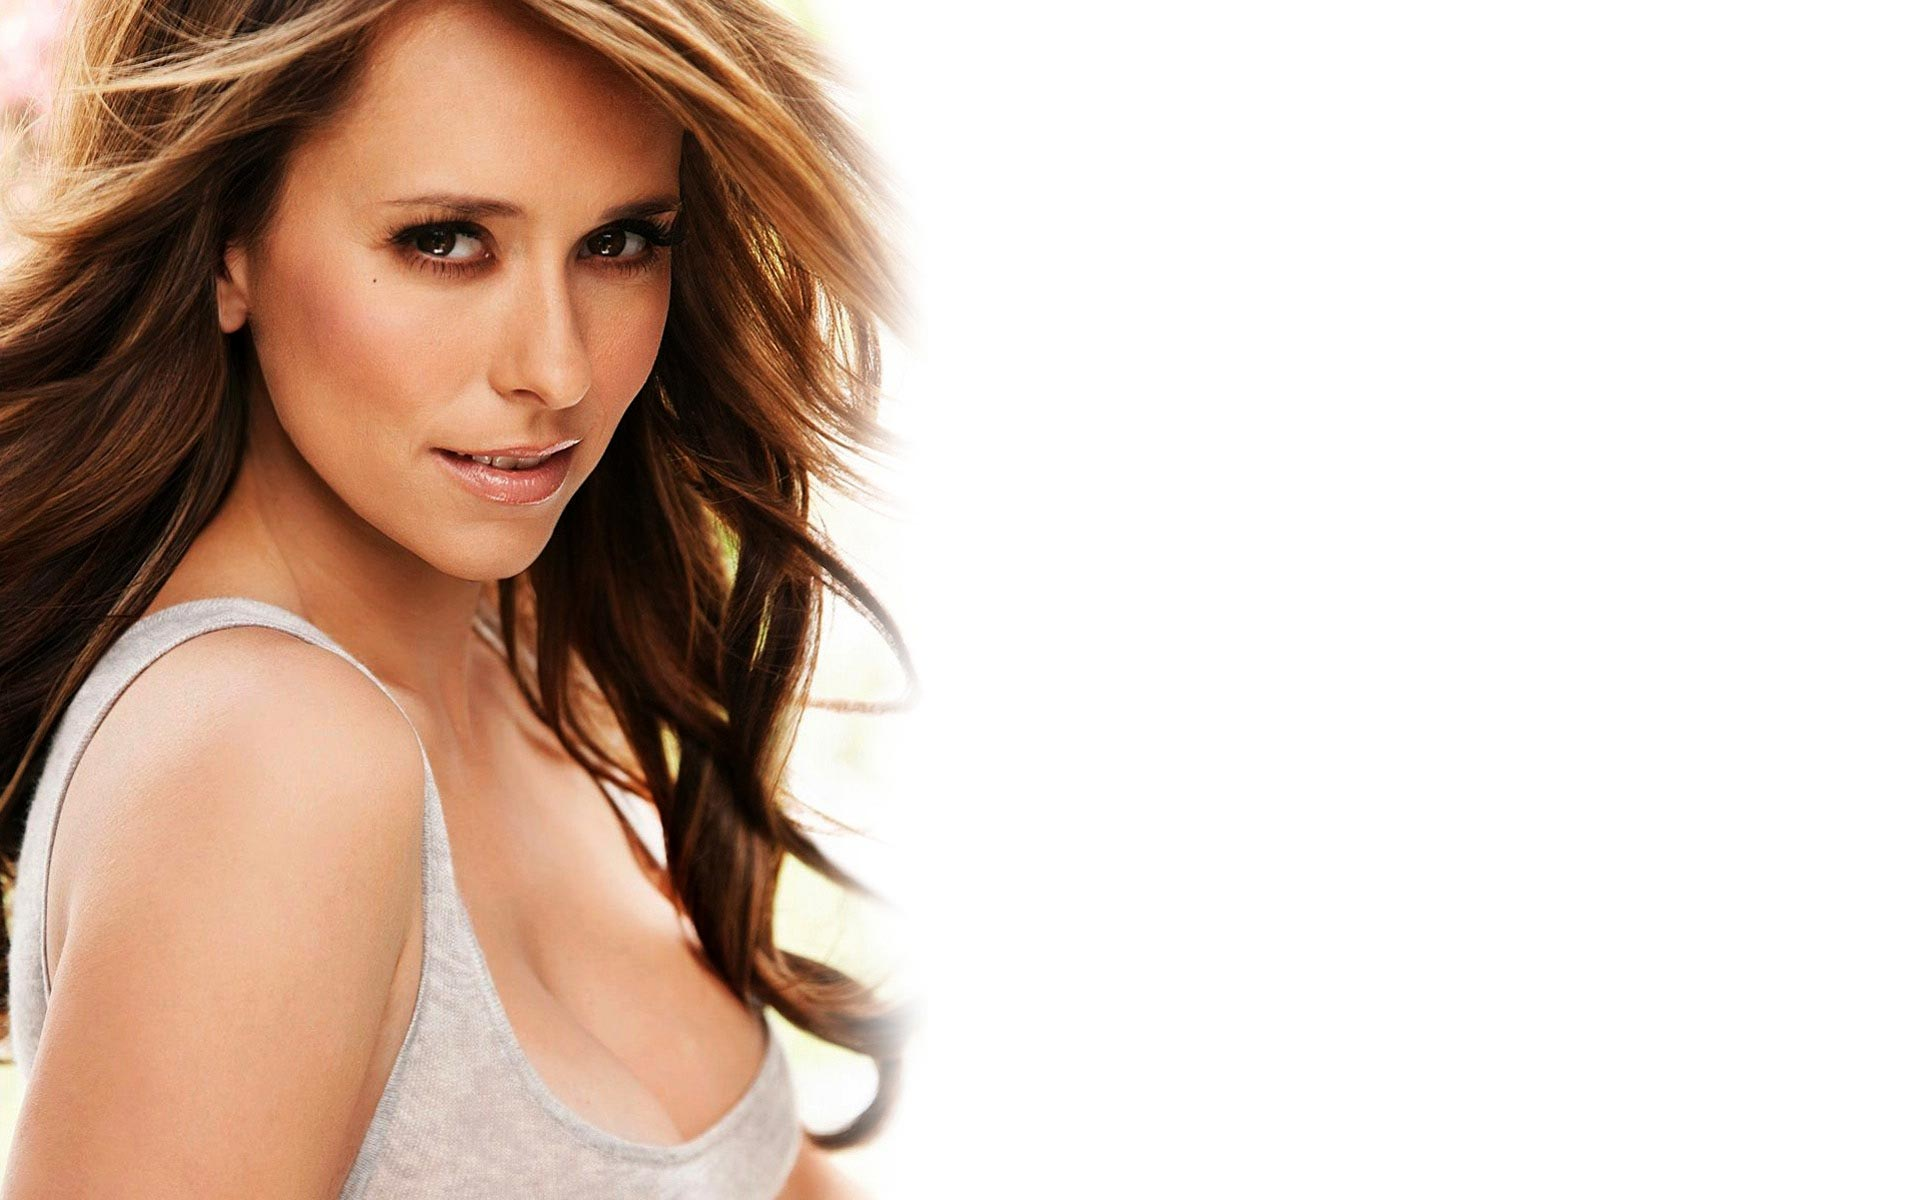 Jennifer Love Hewitt Hot Wallpapers 12-6472